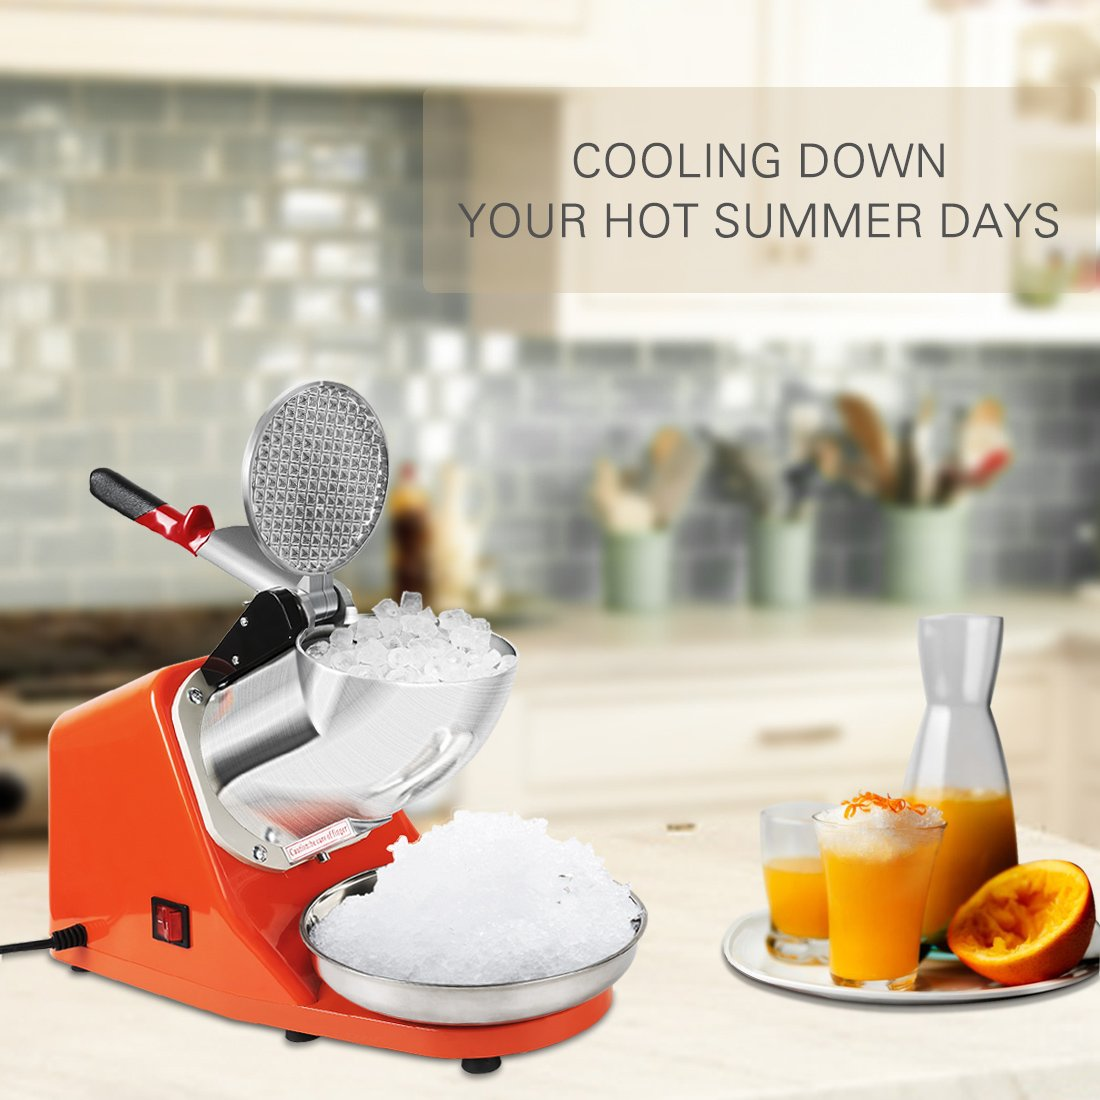 VIVOHOME Electric Ice Crusher Shaver Snow Cone Maker Machine Orange 143lbs/hr for Home and Commerical Use by VIVOHOME (Image #7)